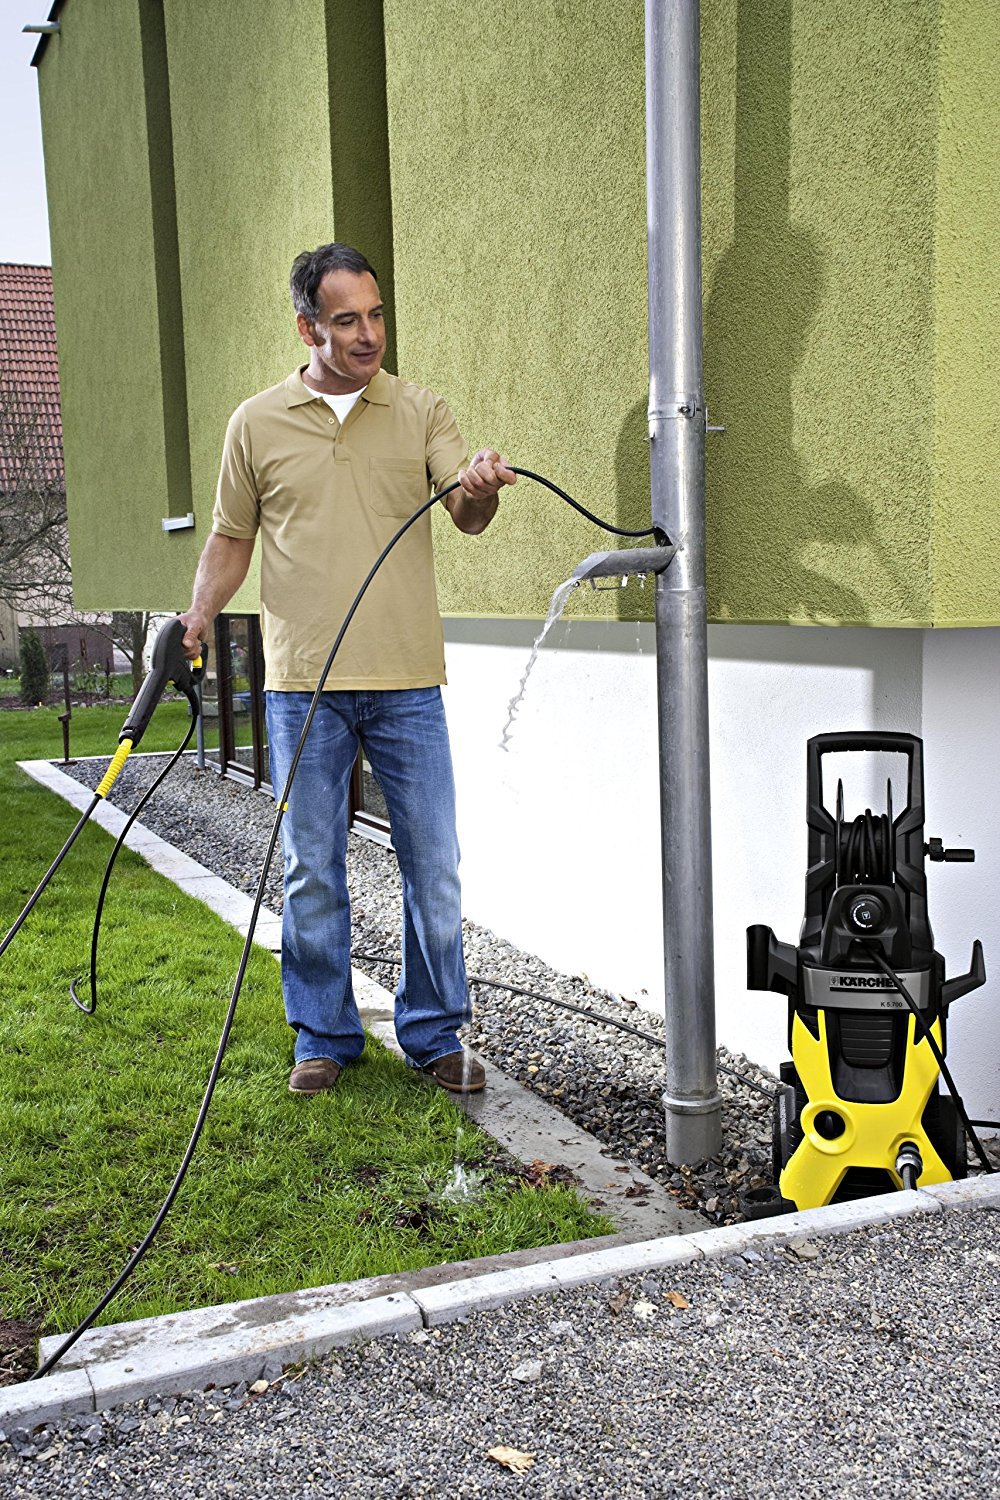 Man using pipe cleaning kit pressure washer